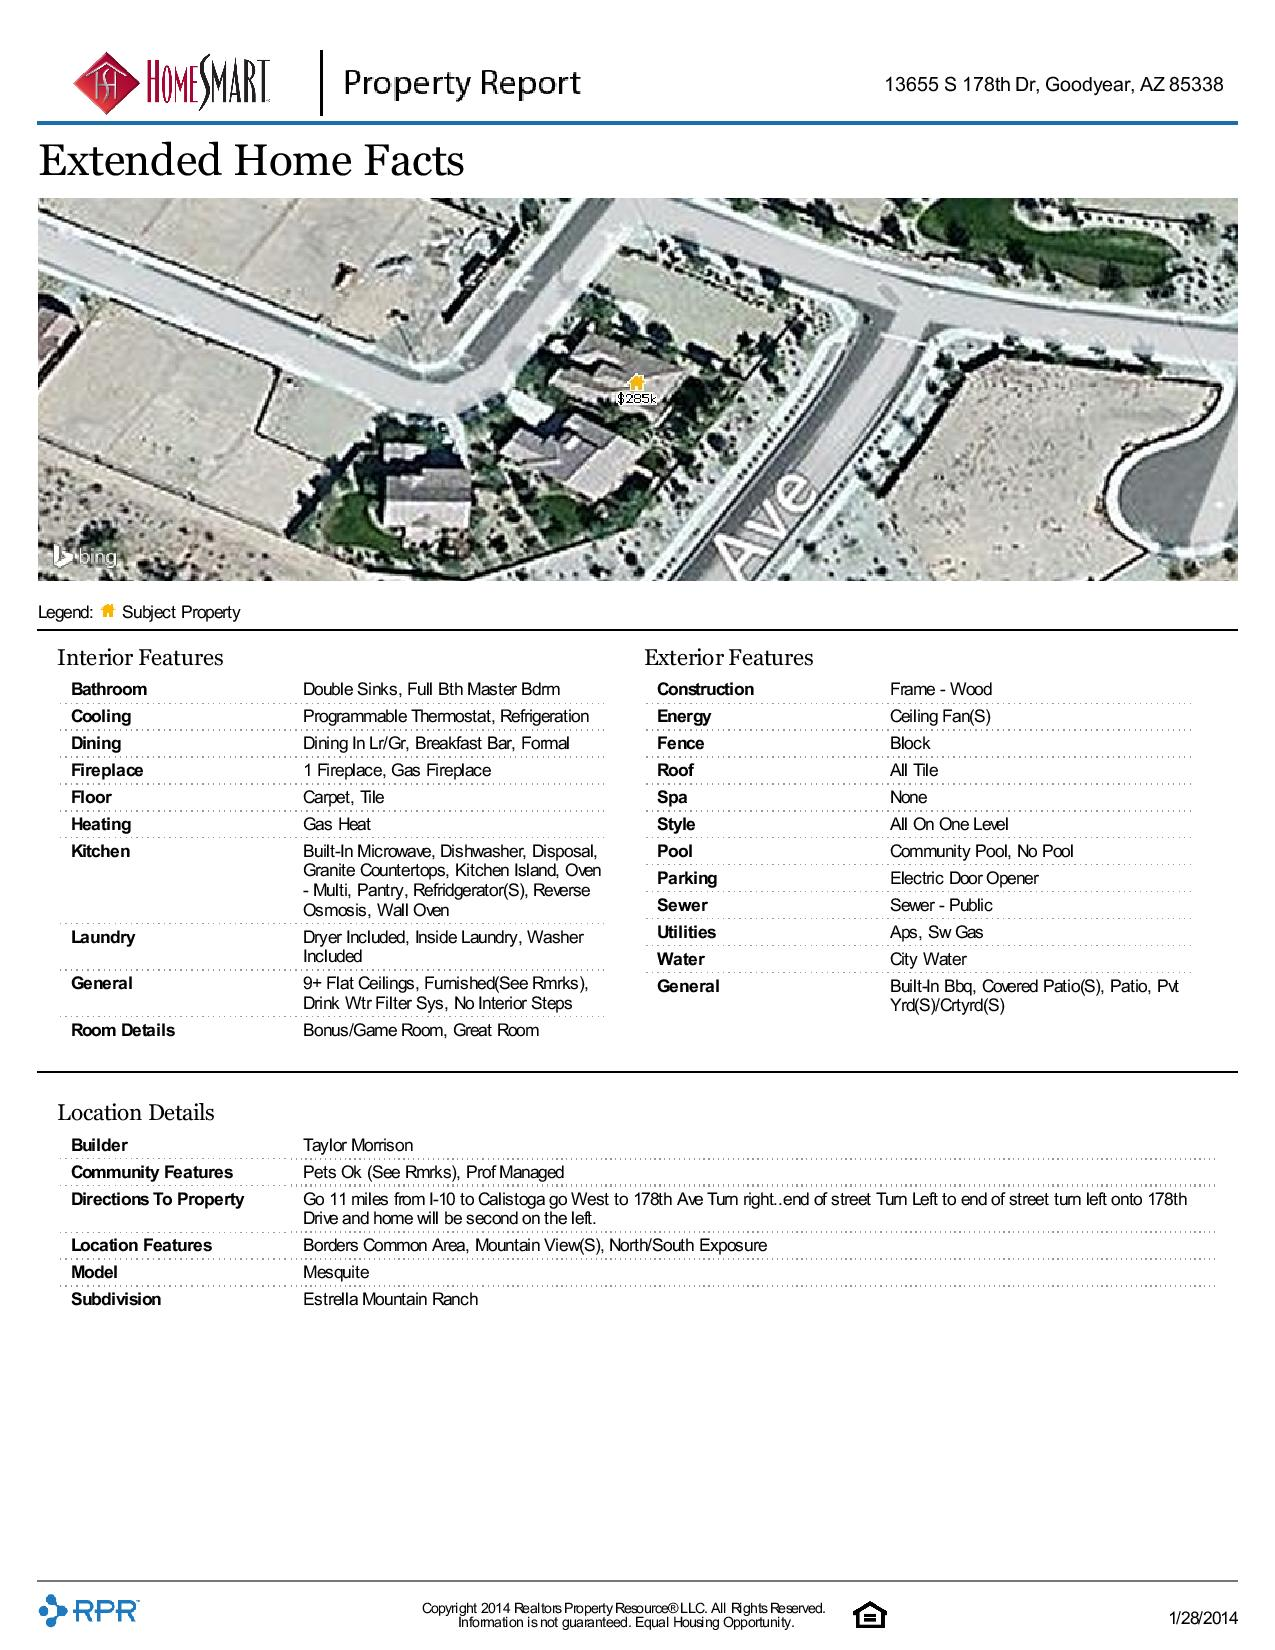 13655-S-178th-Dr-Goodyear-AZ-85338.pdf-page-004